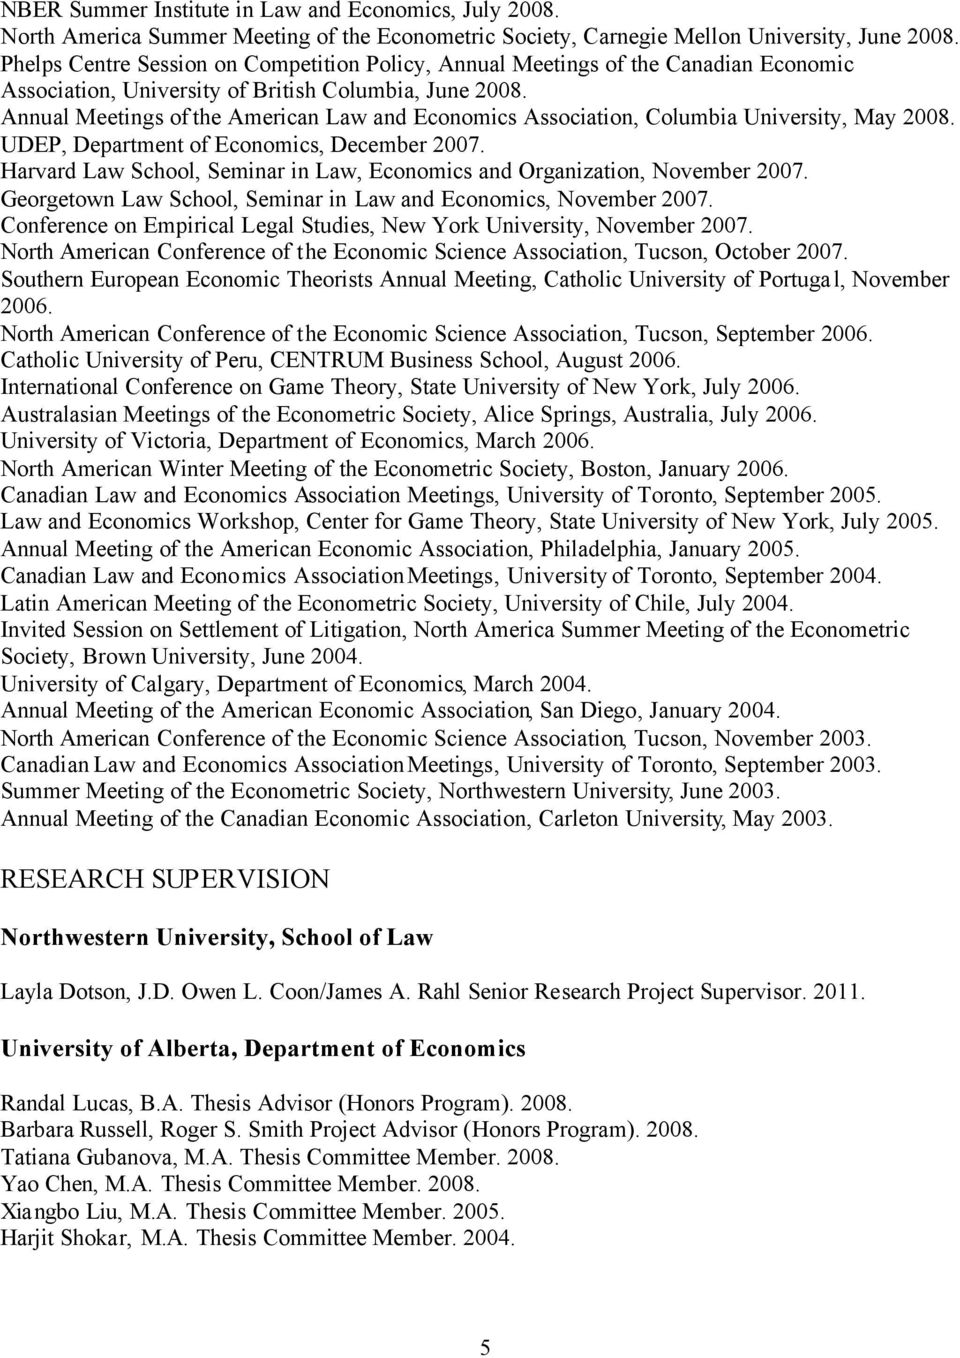 Annual Meetings of the American Law and Economics Association, Columbia University, May 2008. UDEP, Department of Economics, December 2007.